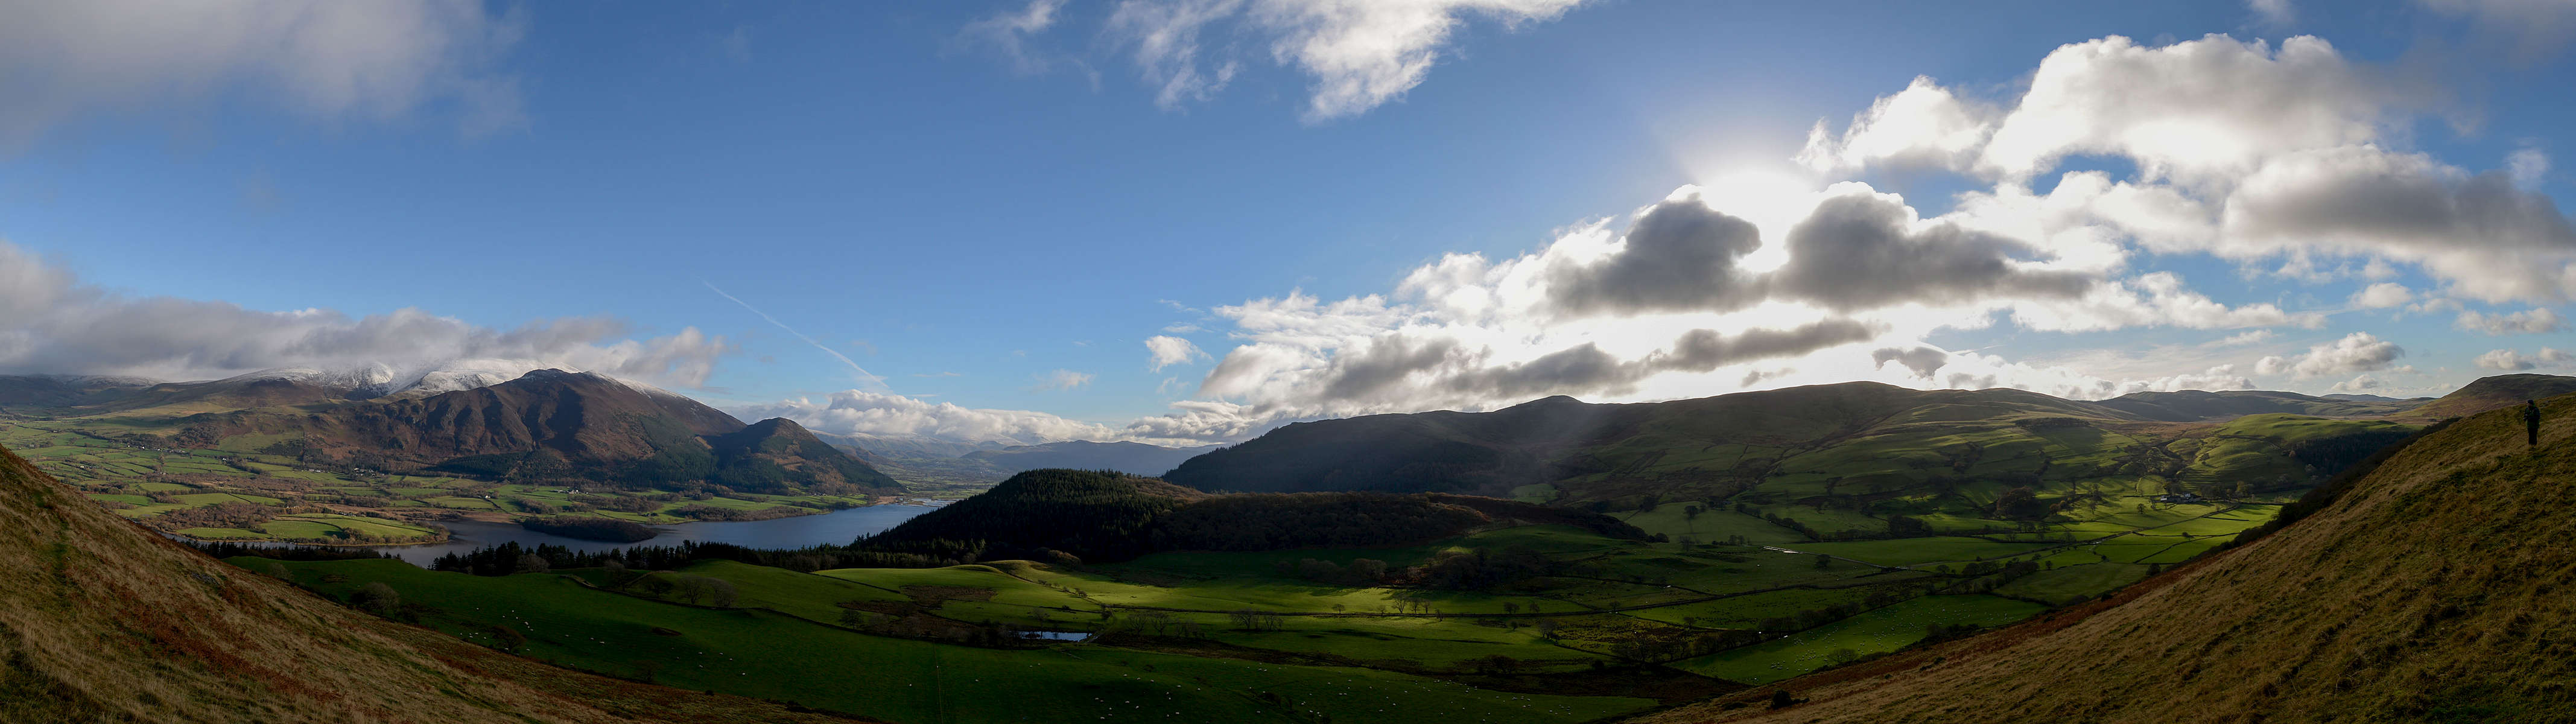 A view looking north and east across Bassenthwaite Lake to Skiddaw and the town of Keswick, from Sale Fell near Cockermouth.A stitch of six images. Nikon D610, 17-35mm